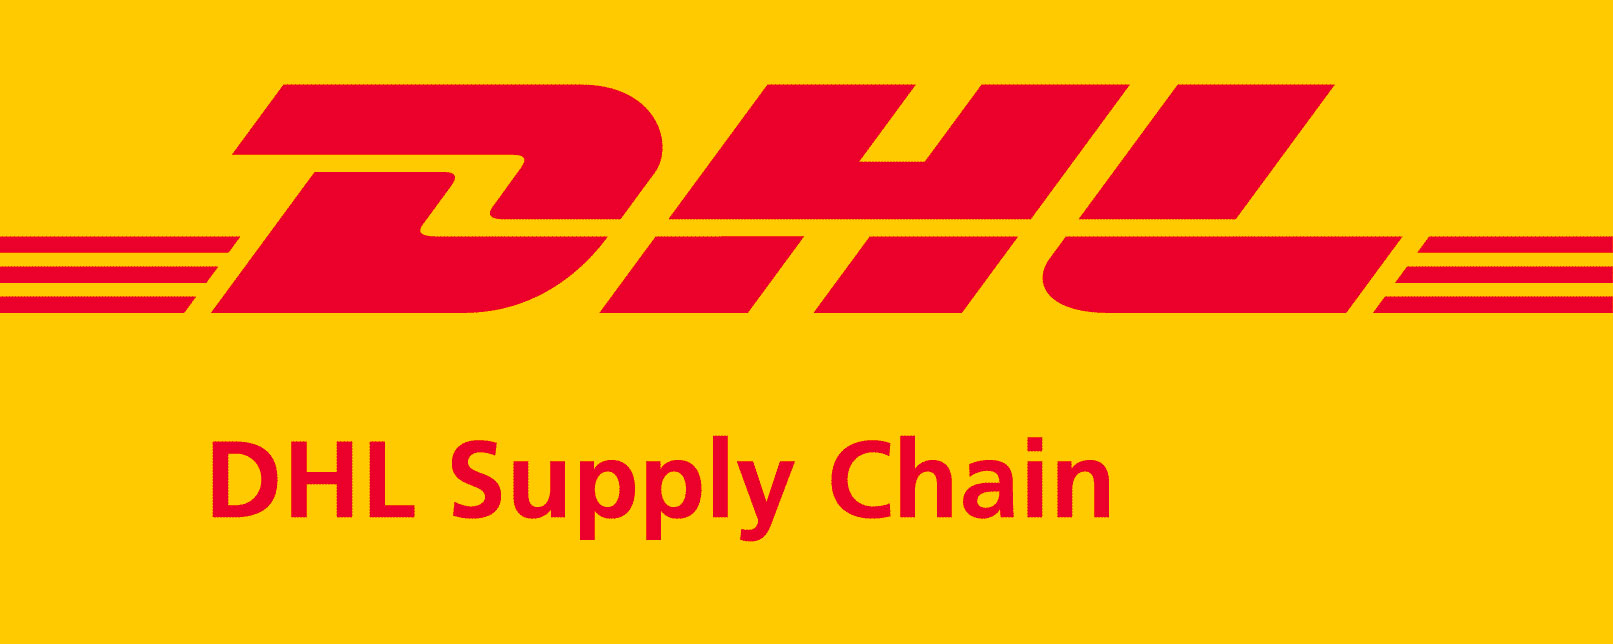 Dhl Locations Near Me >> Union City Dhl Hires